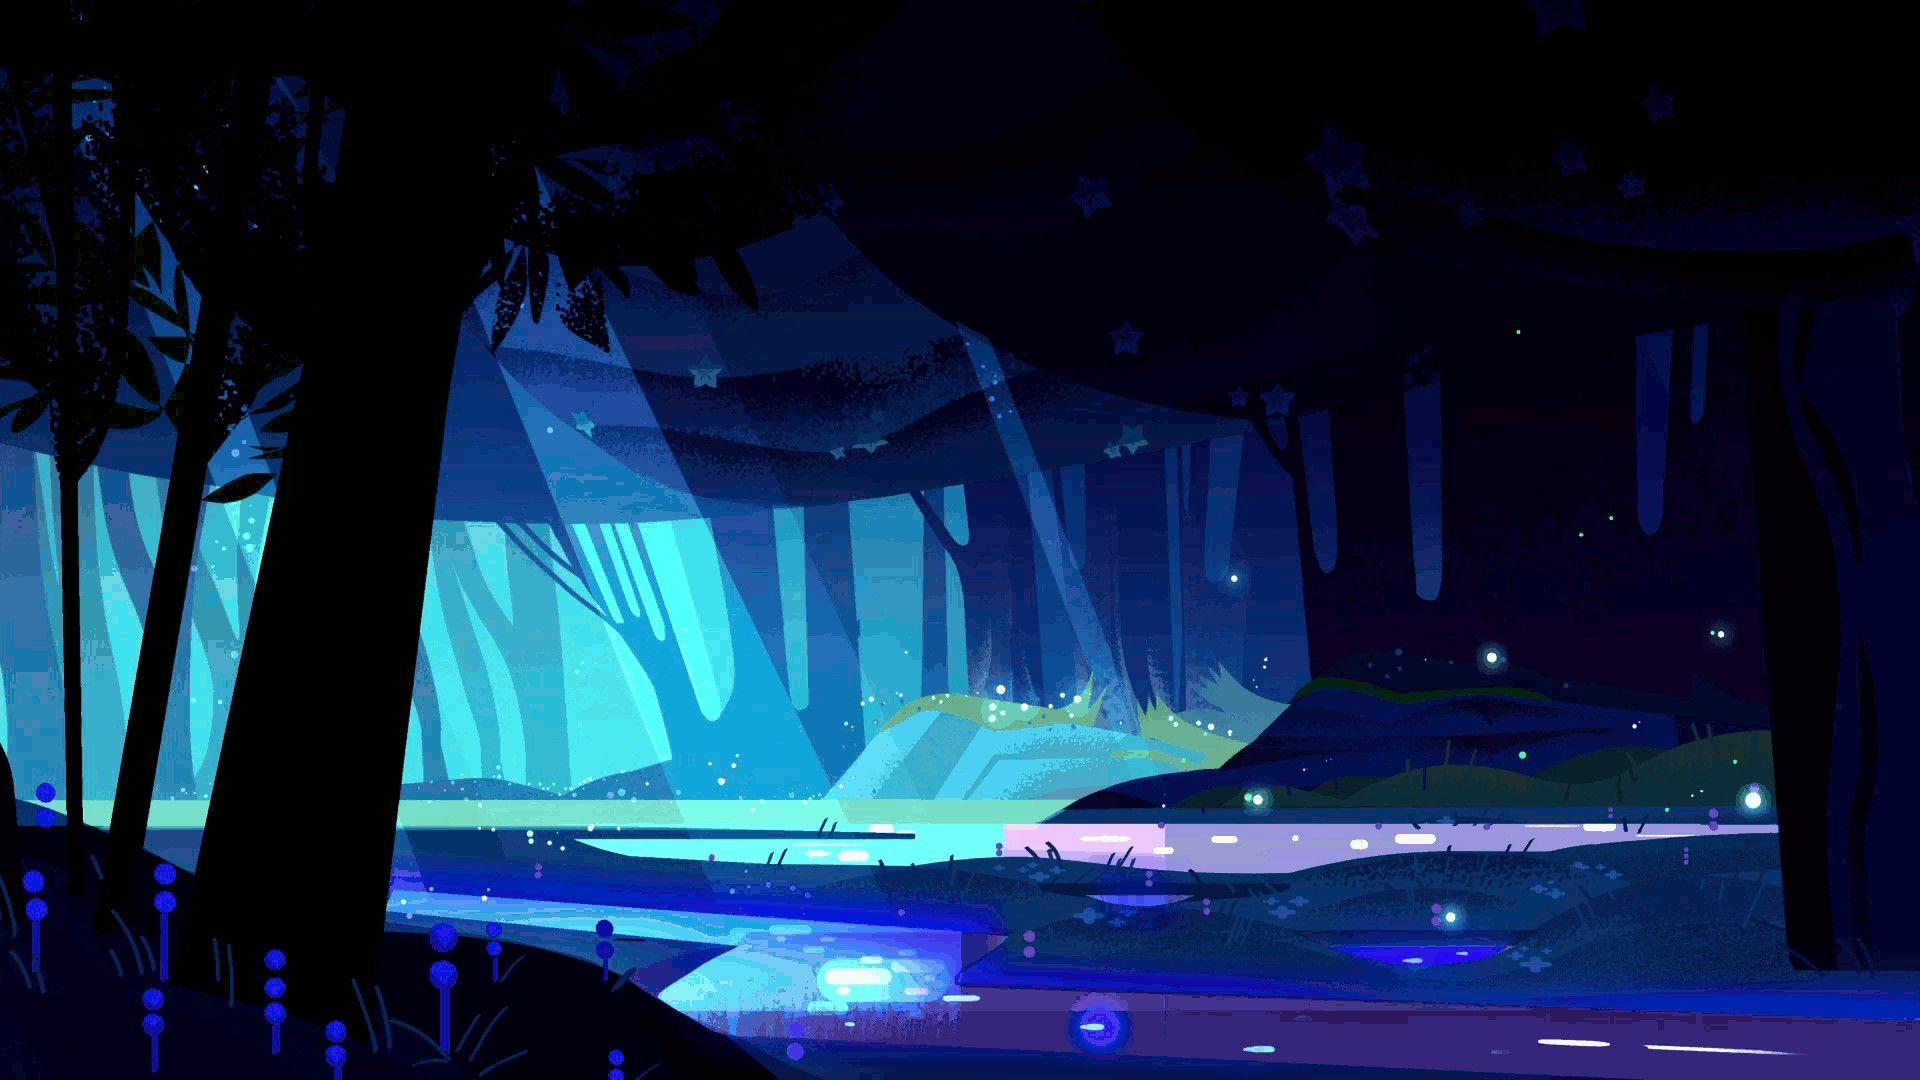 Steven Universe Hd Wallpapers Wallpaper Cave